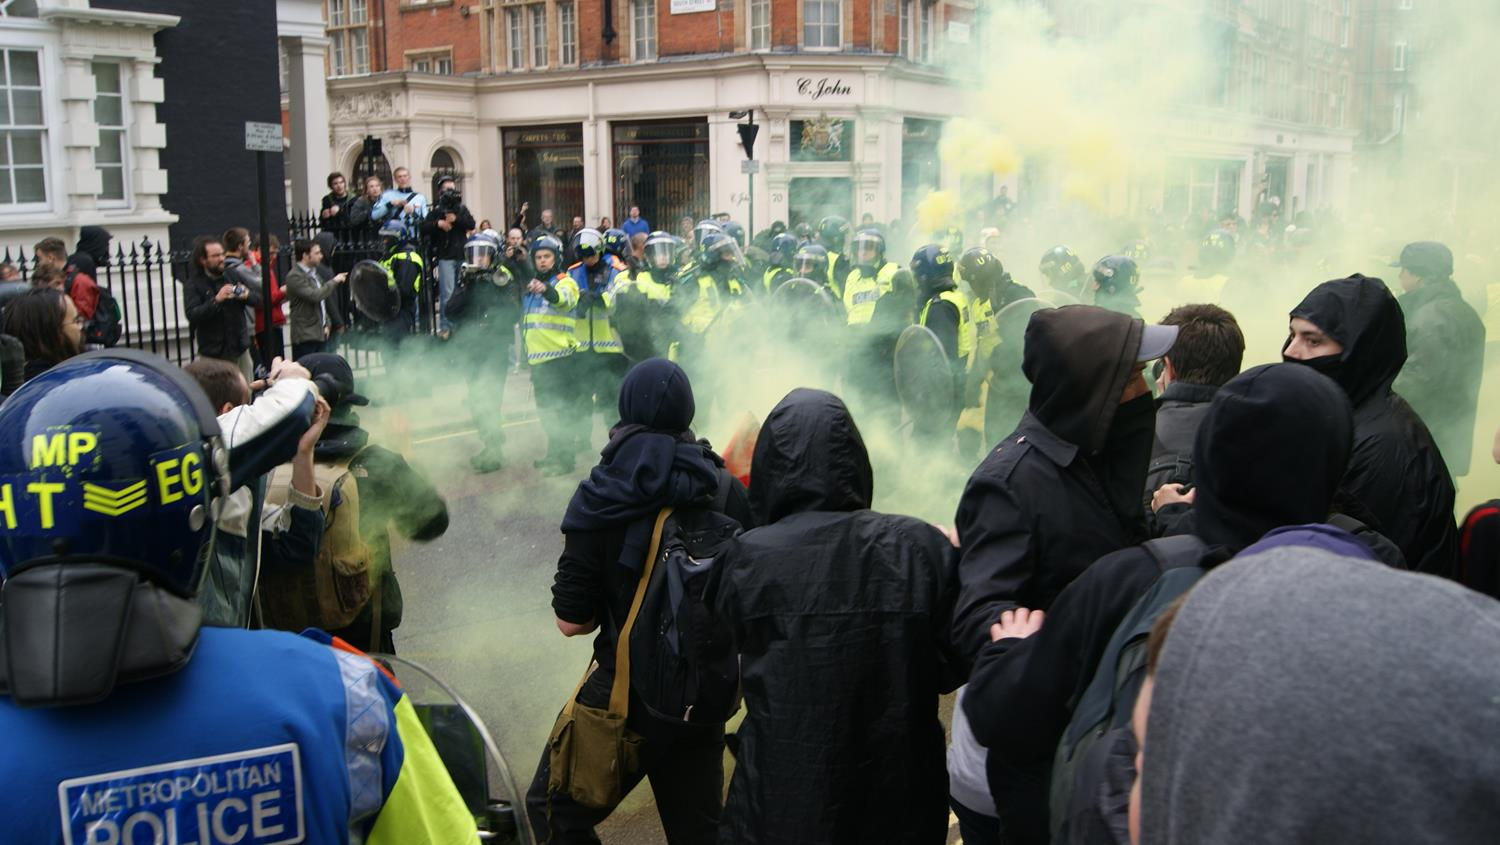 London police and smoke grenades charging at London Photographer by MAKSAM Photography